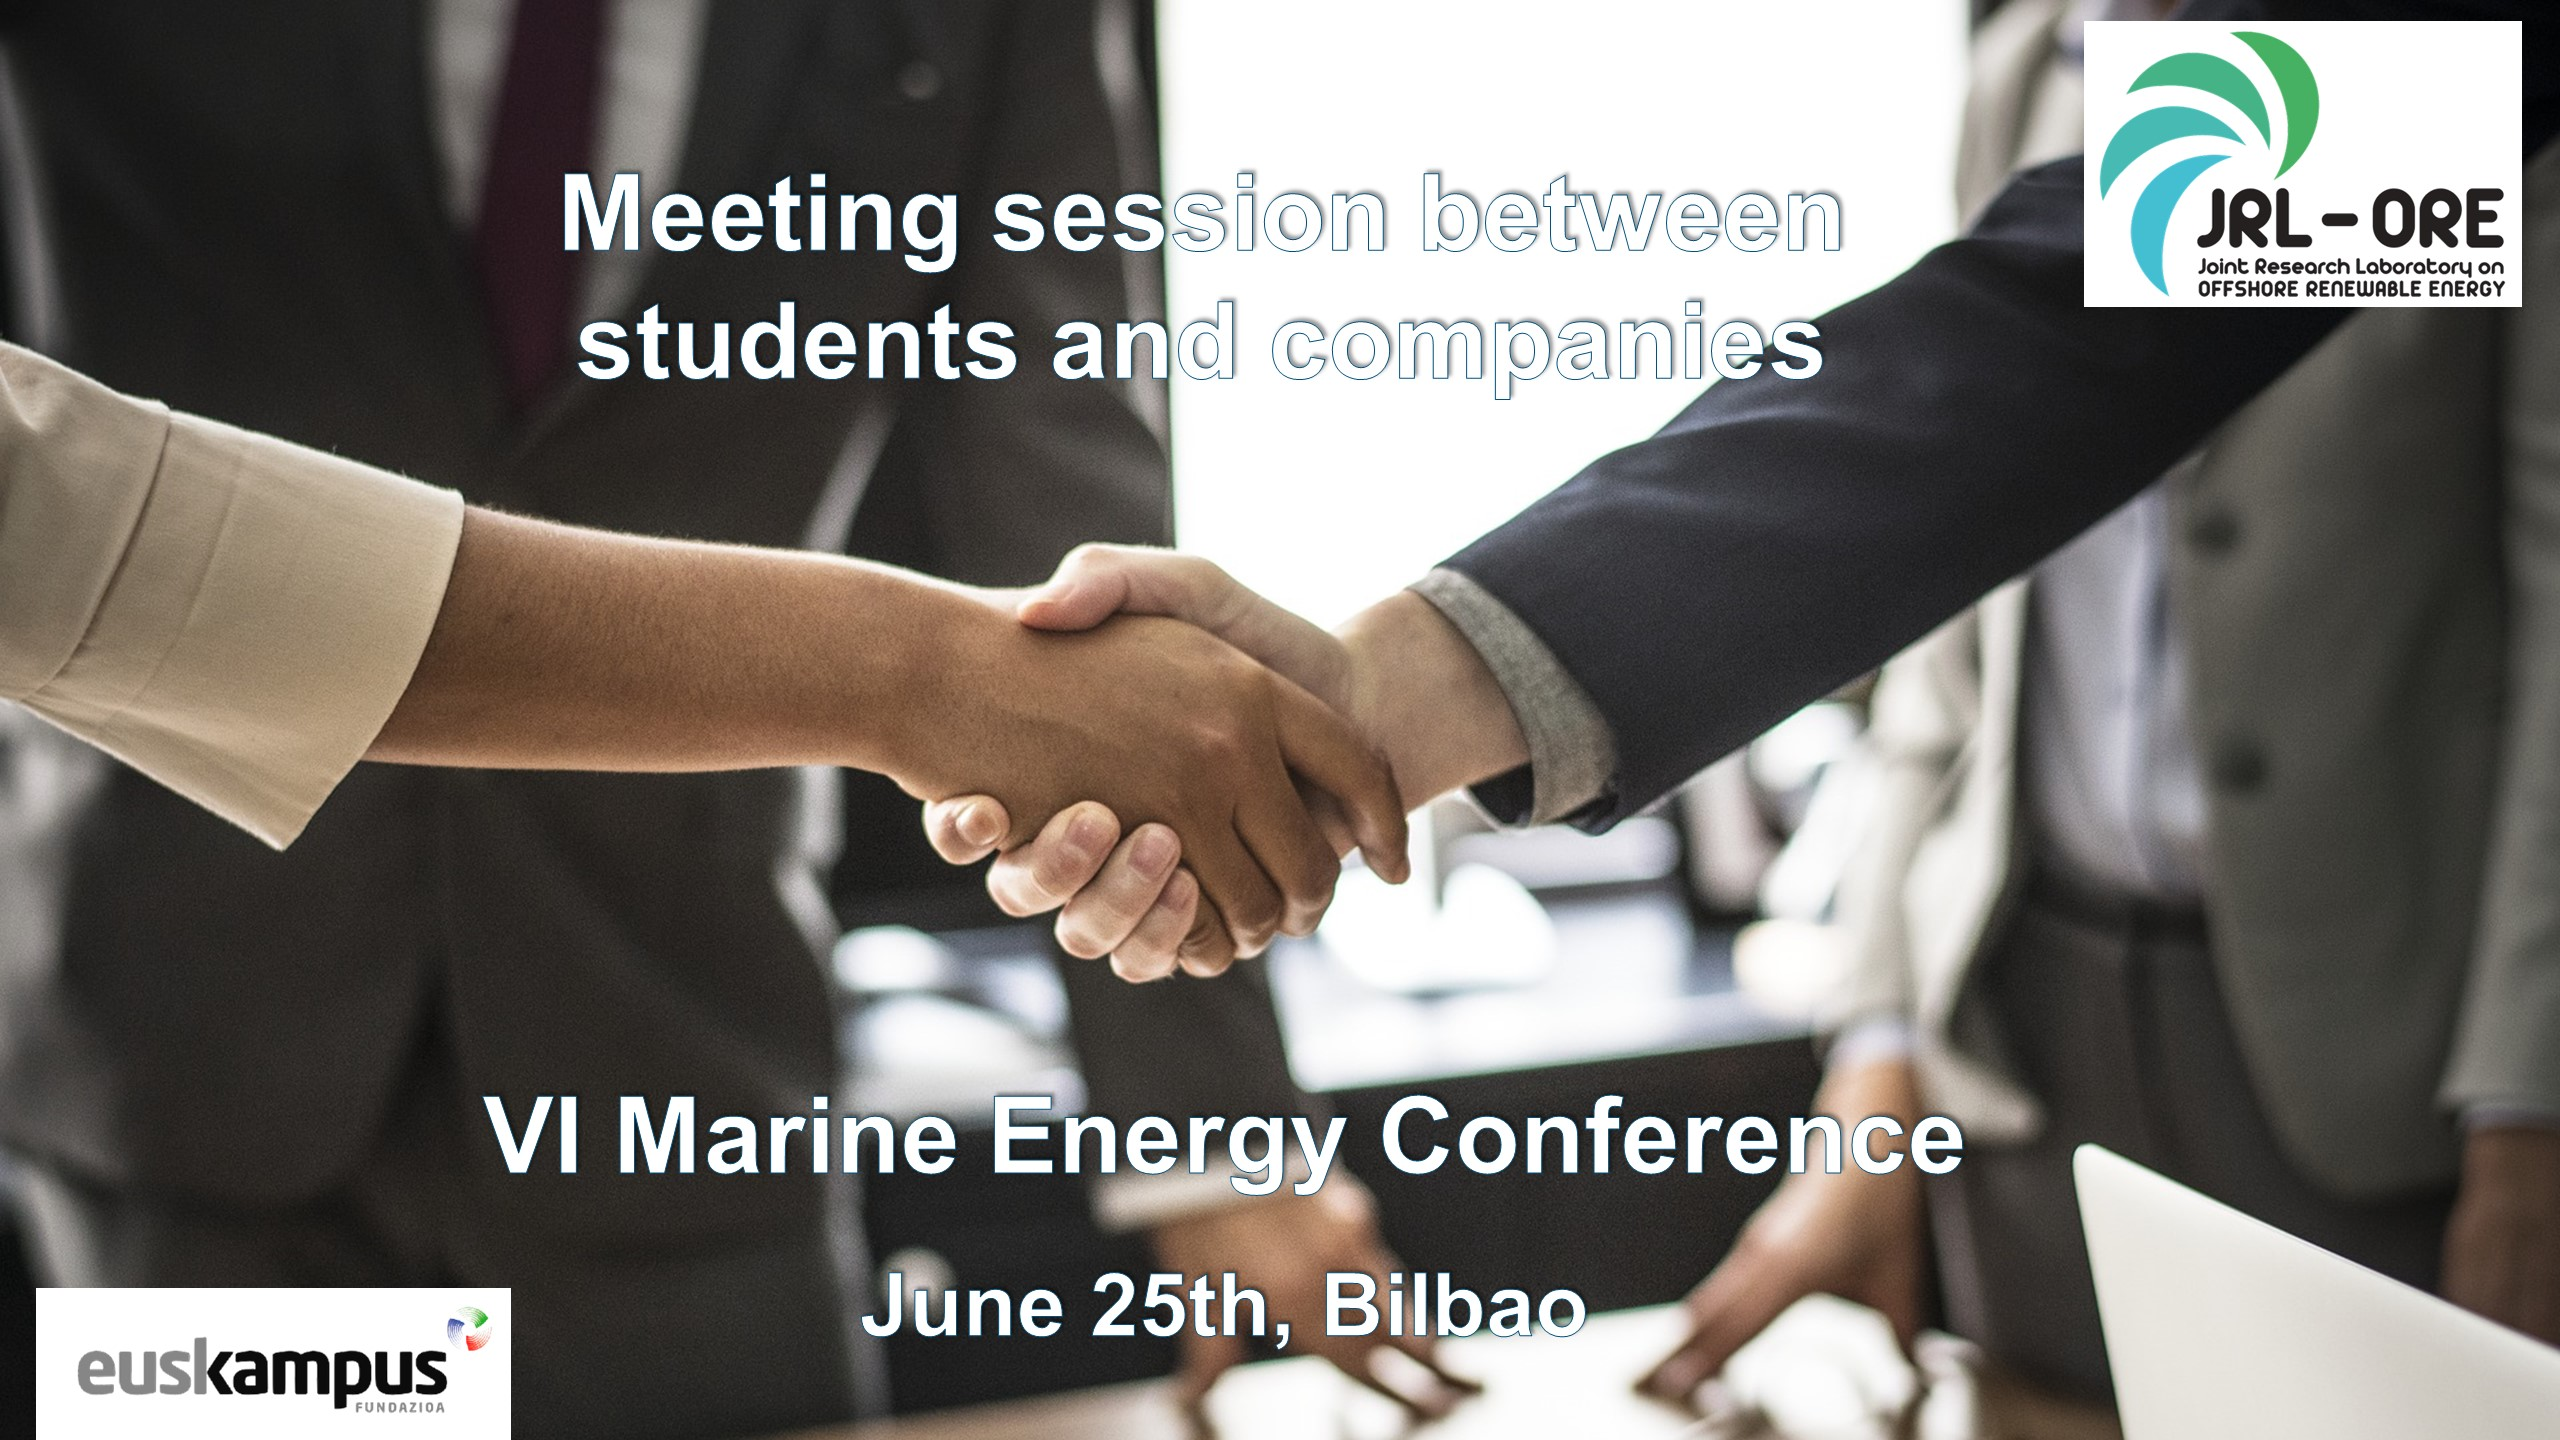 VI Marine Energy Conference – Meeting session between students and companies